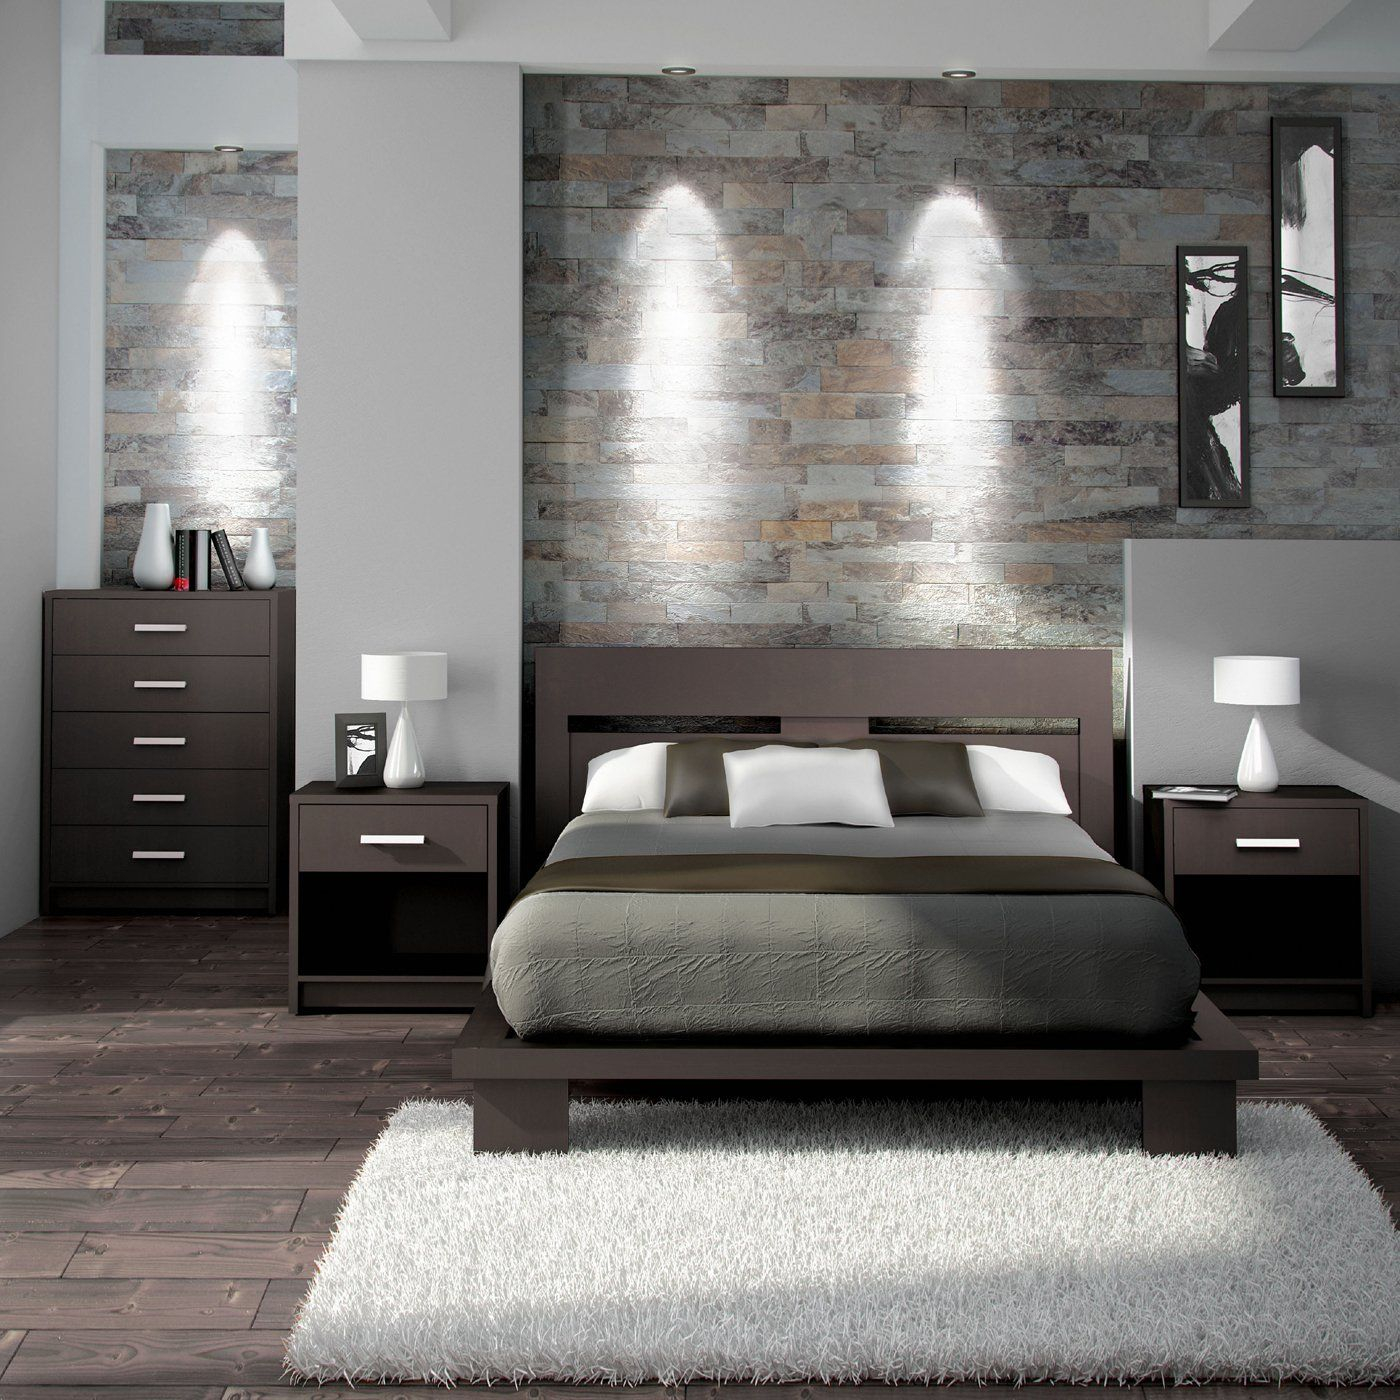 Black Bedroom Ideas Inspiration For Master Bedroom Designs with 13 Clever Initiatives of How to Craft Bedroom Set Modern